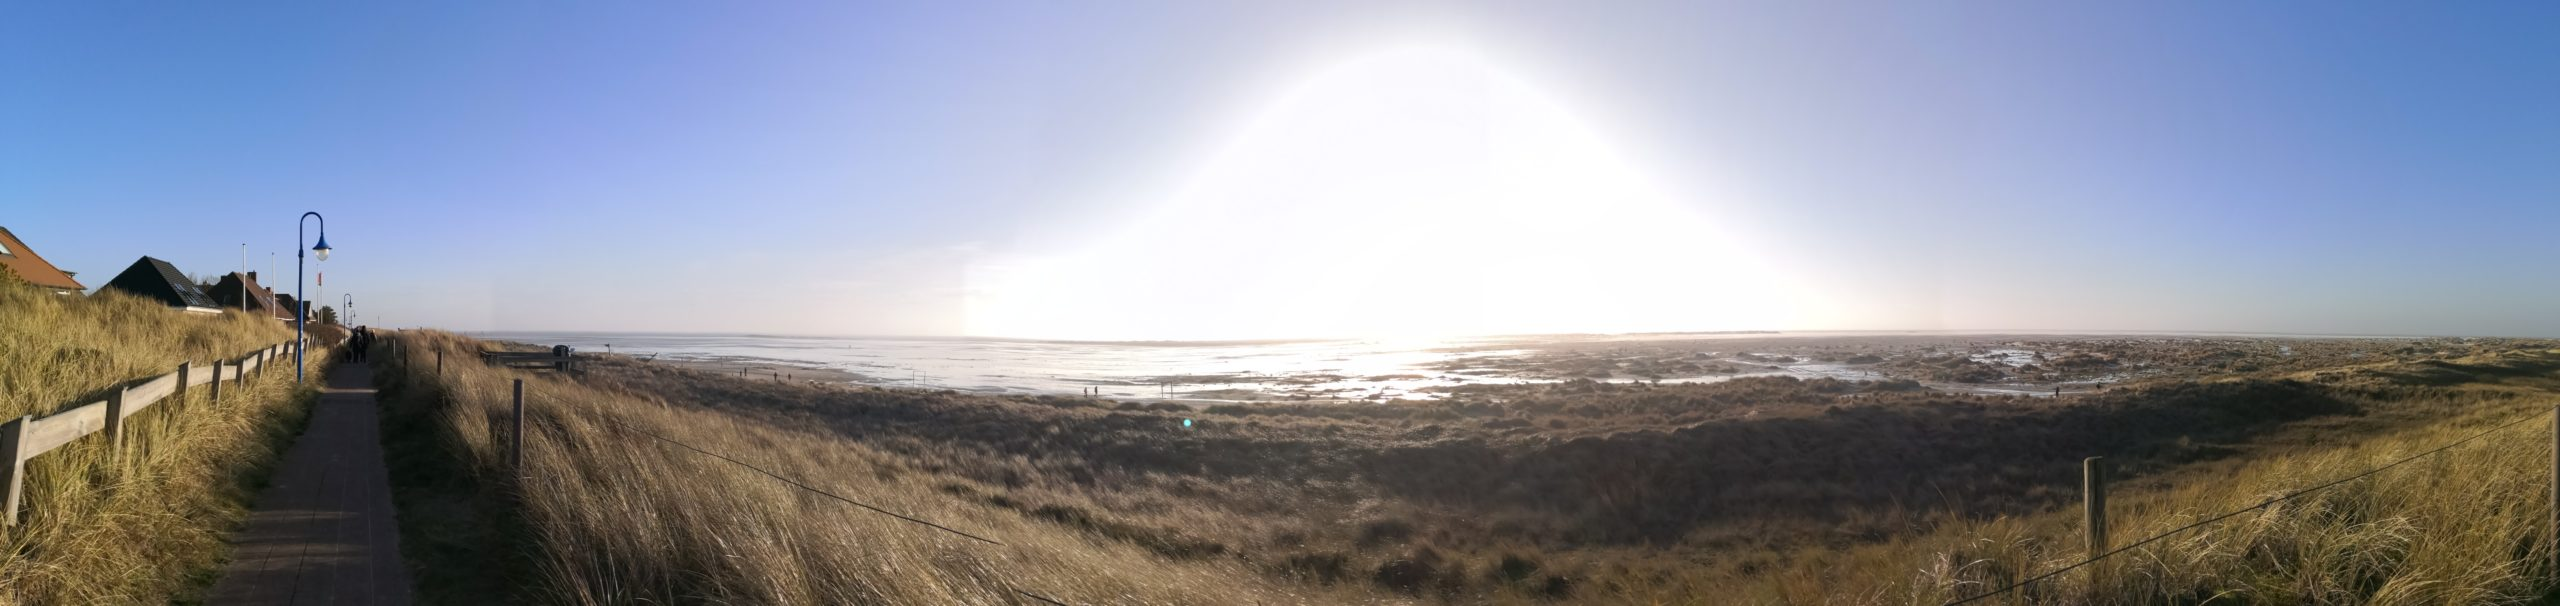 Amrum Panorama Wittdün